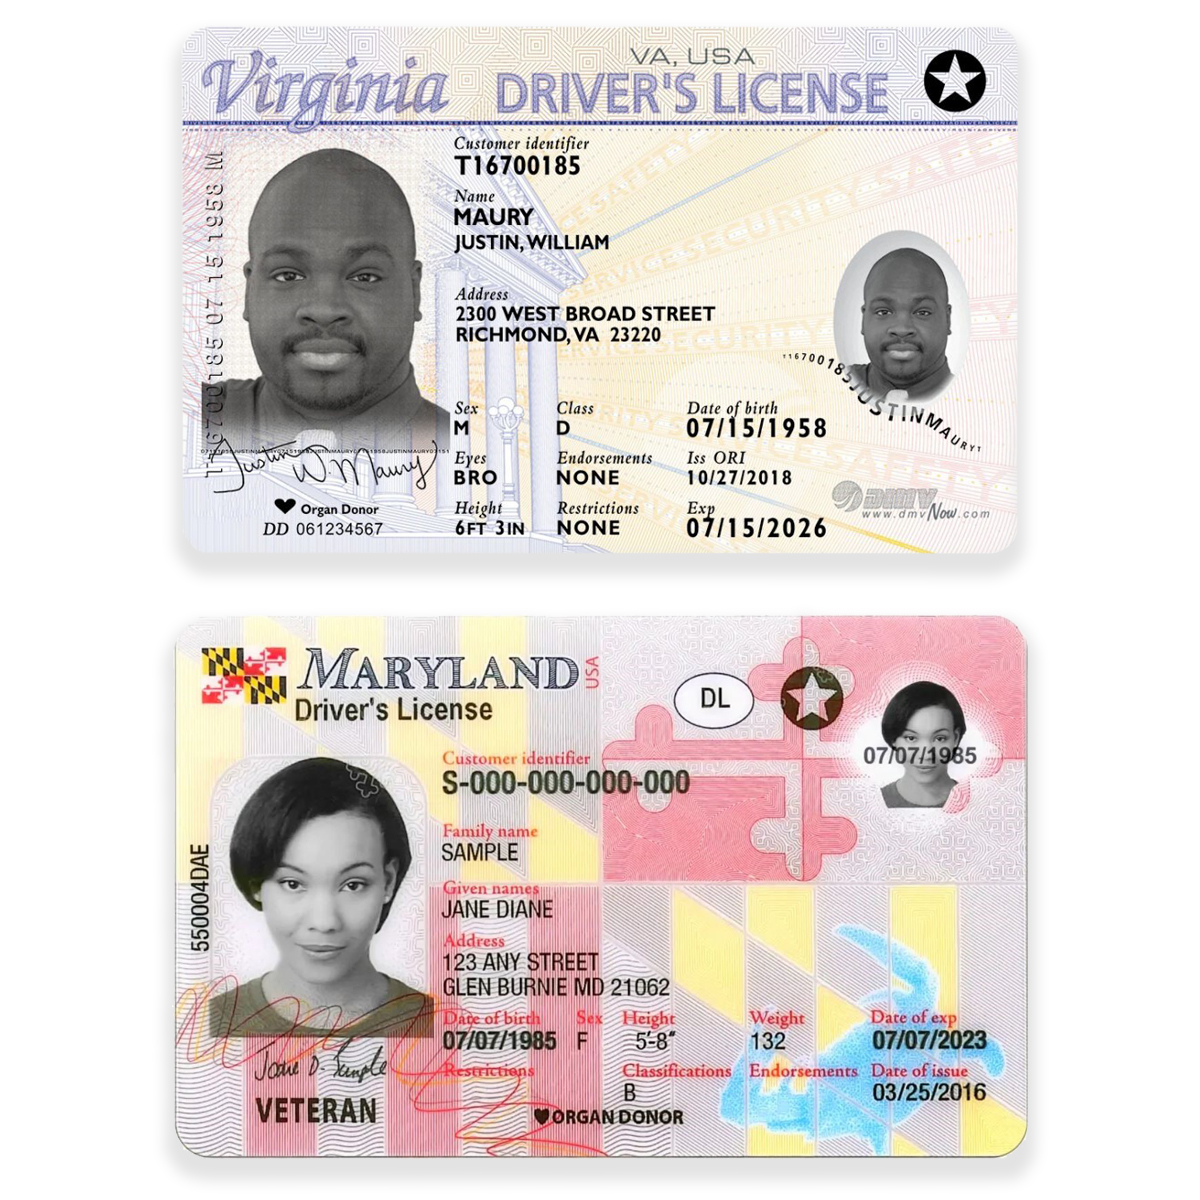 Examples of Real ID licenses.